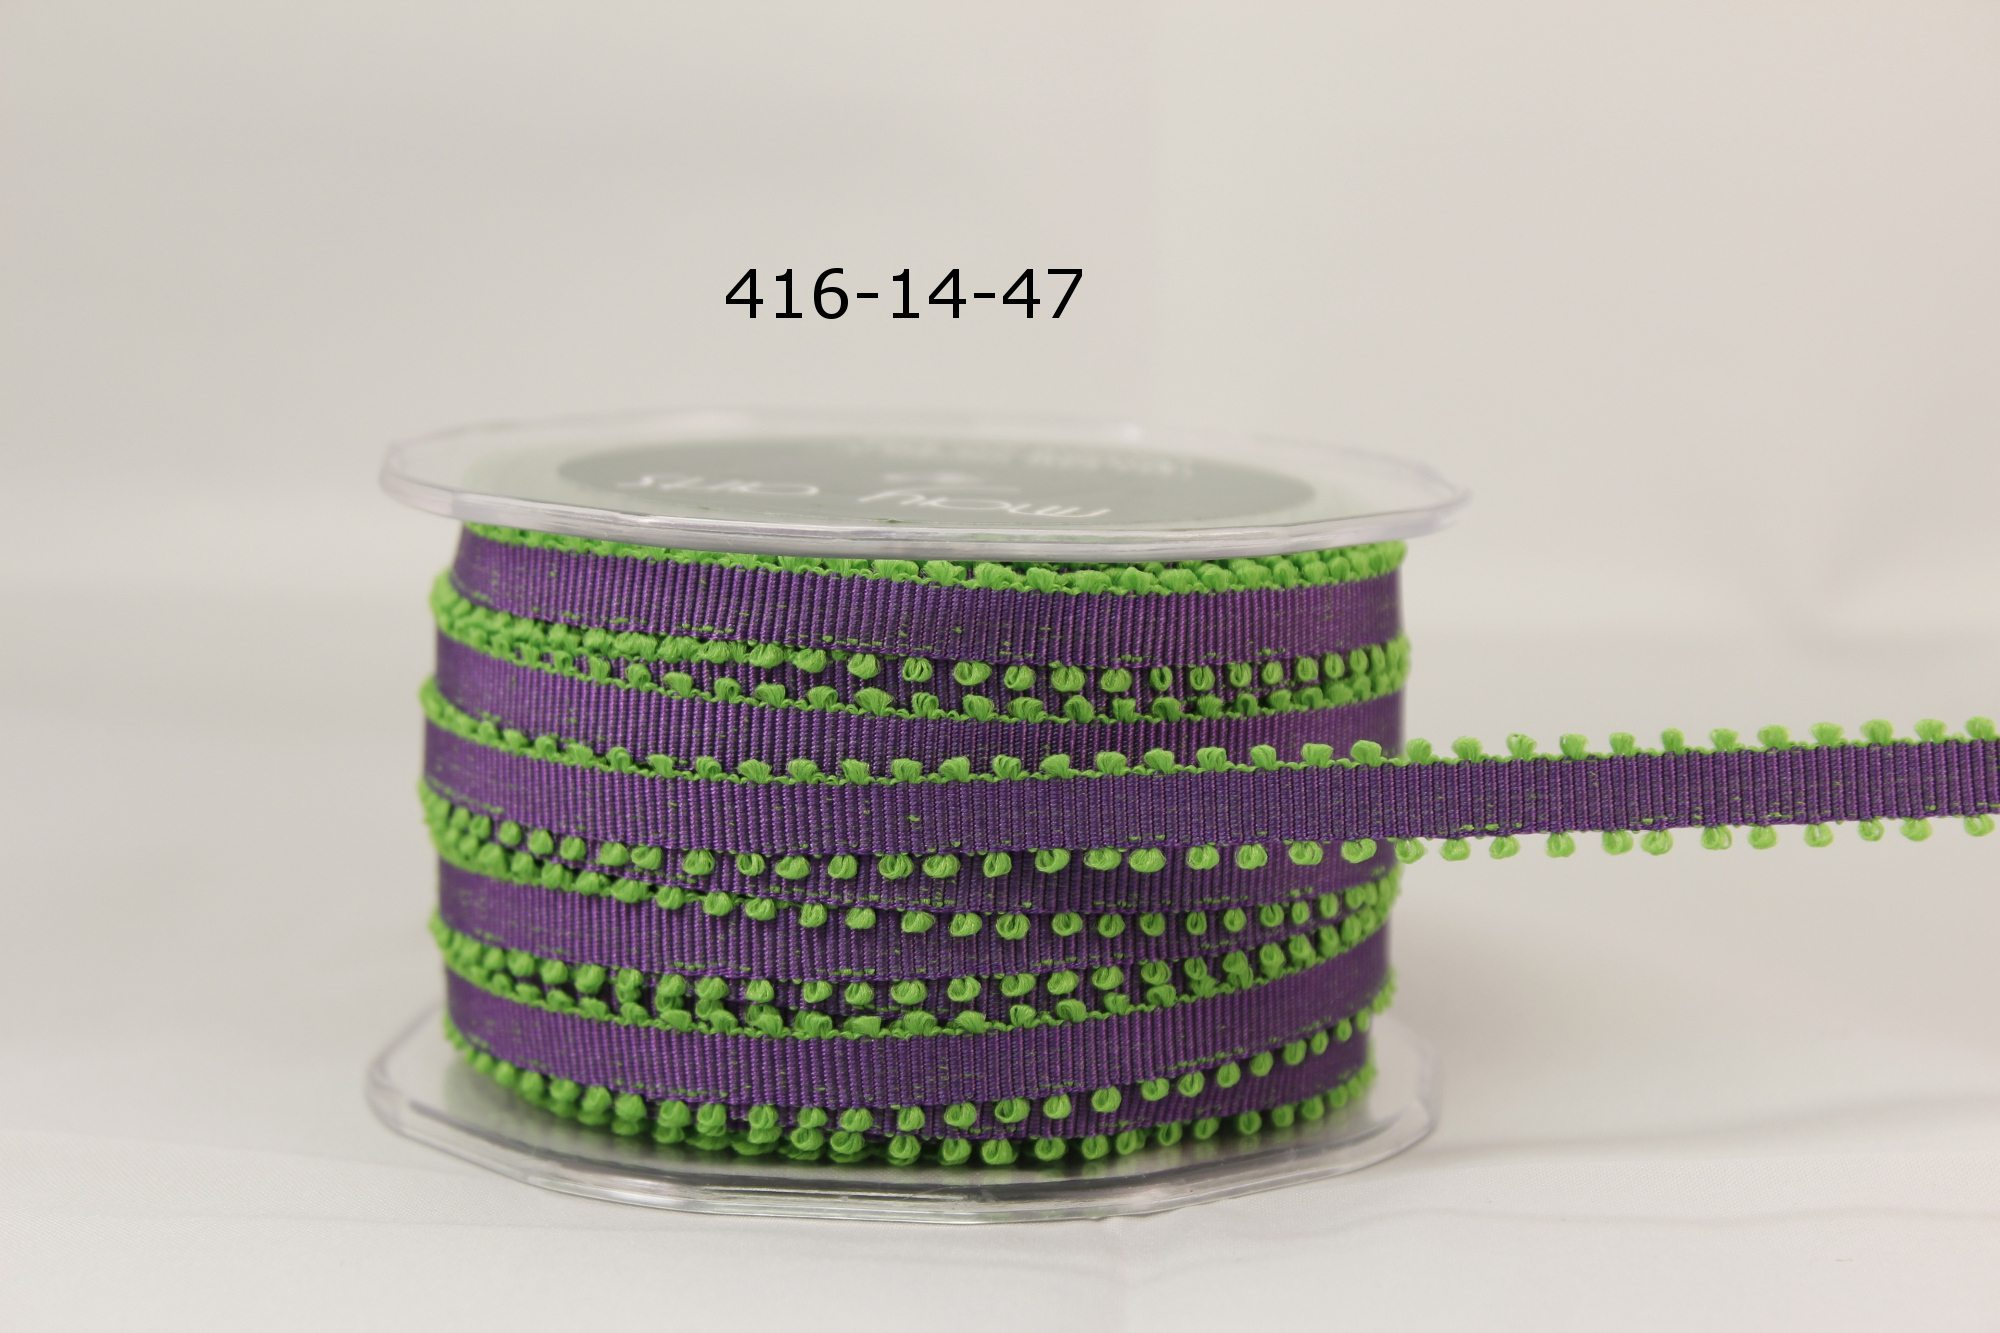 Variation #154935 of 1/4 Inch Grosgrain Ribbon w/ Picot Edge 1